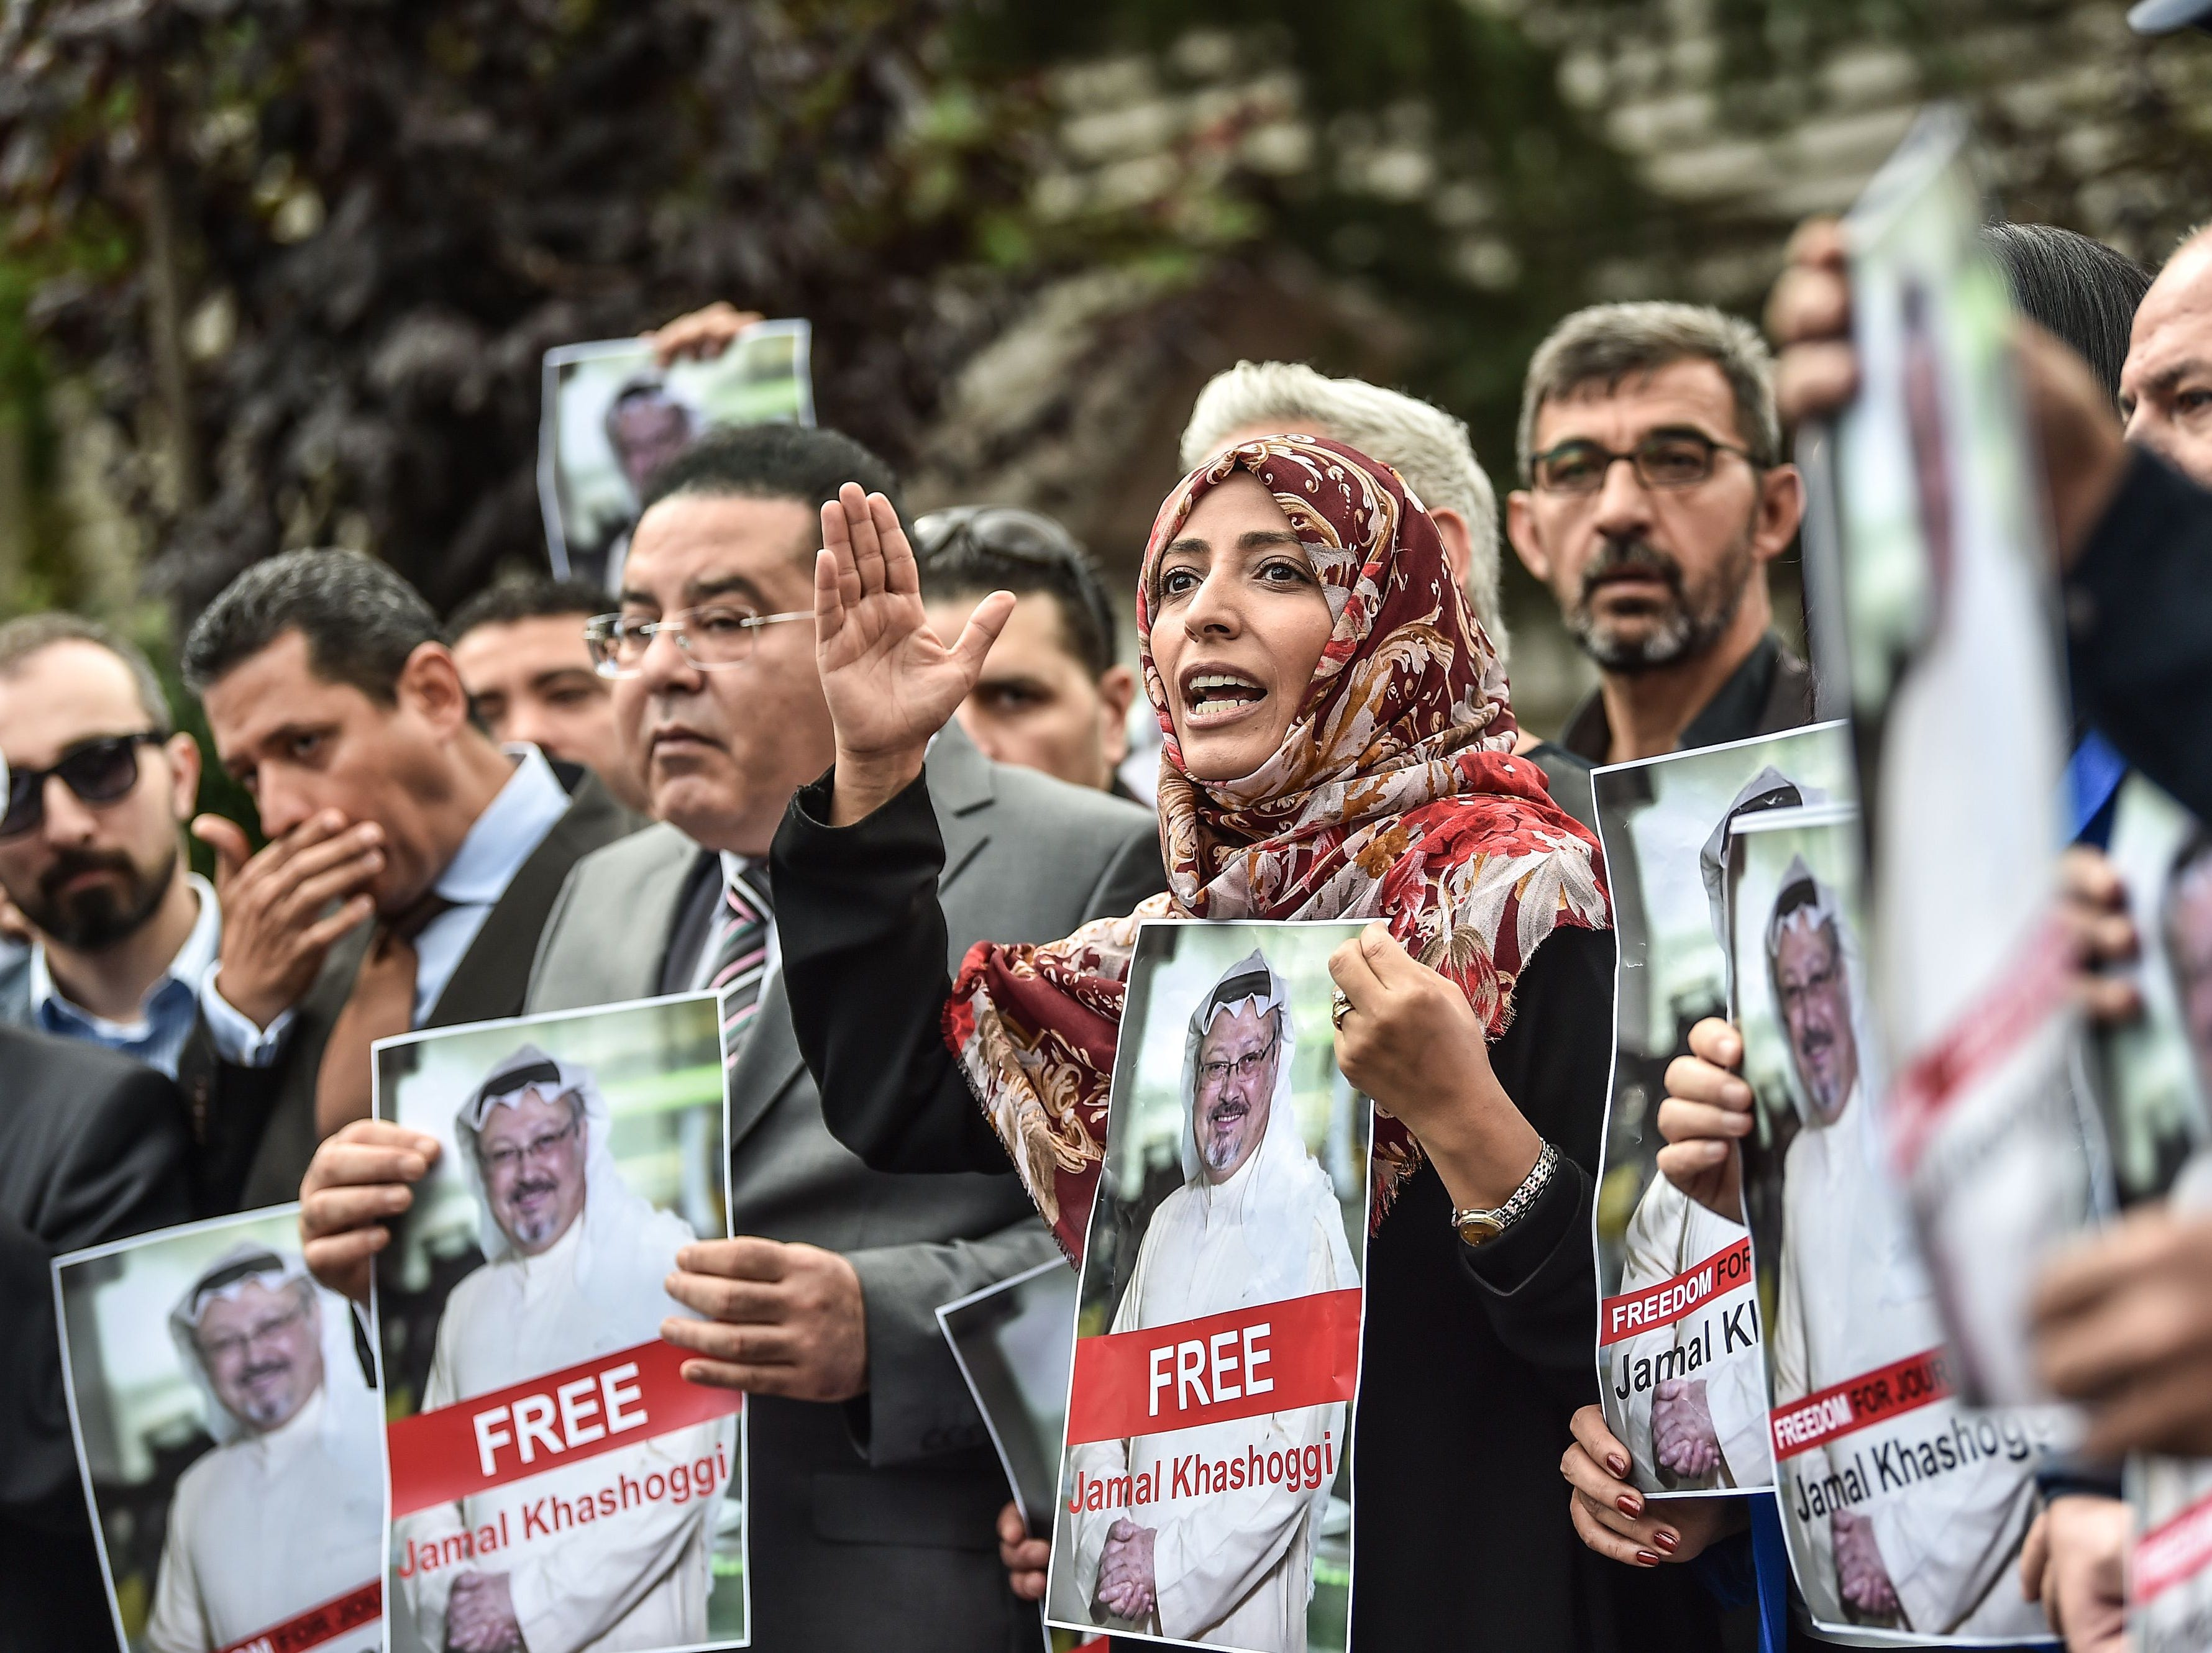 Nobel Peace Prize laureate Yemeni Tawakkol Karman (R), flanked by Egytian opposition politican Ayman Nour (L), holds pictures of missing journalist Jamal Khashoggi during a demonstration in front of the Saudi Arabian consulate on Oct. 8, 2018 in Istanbul.